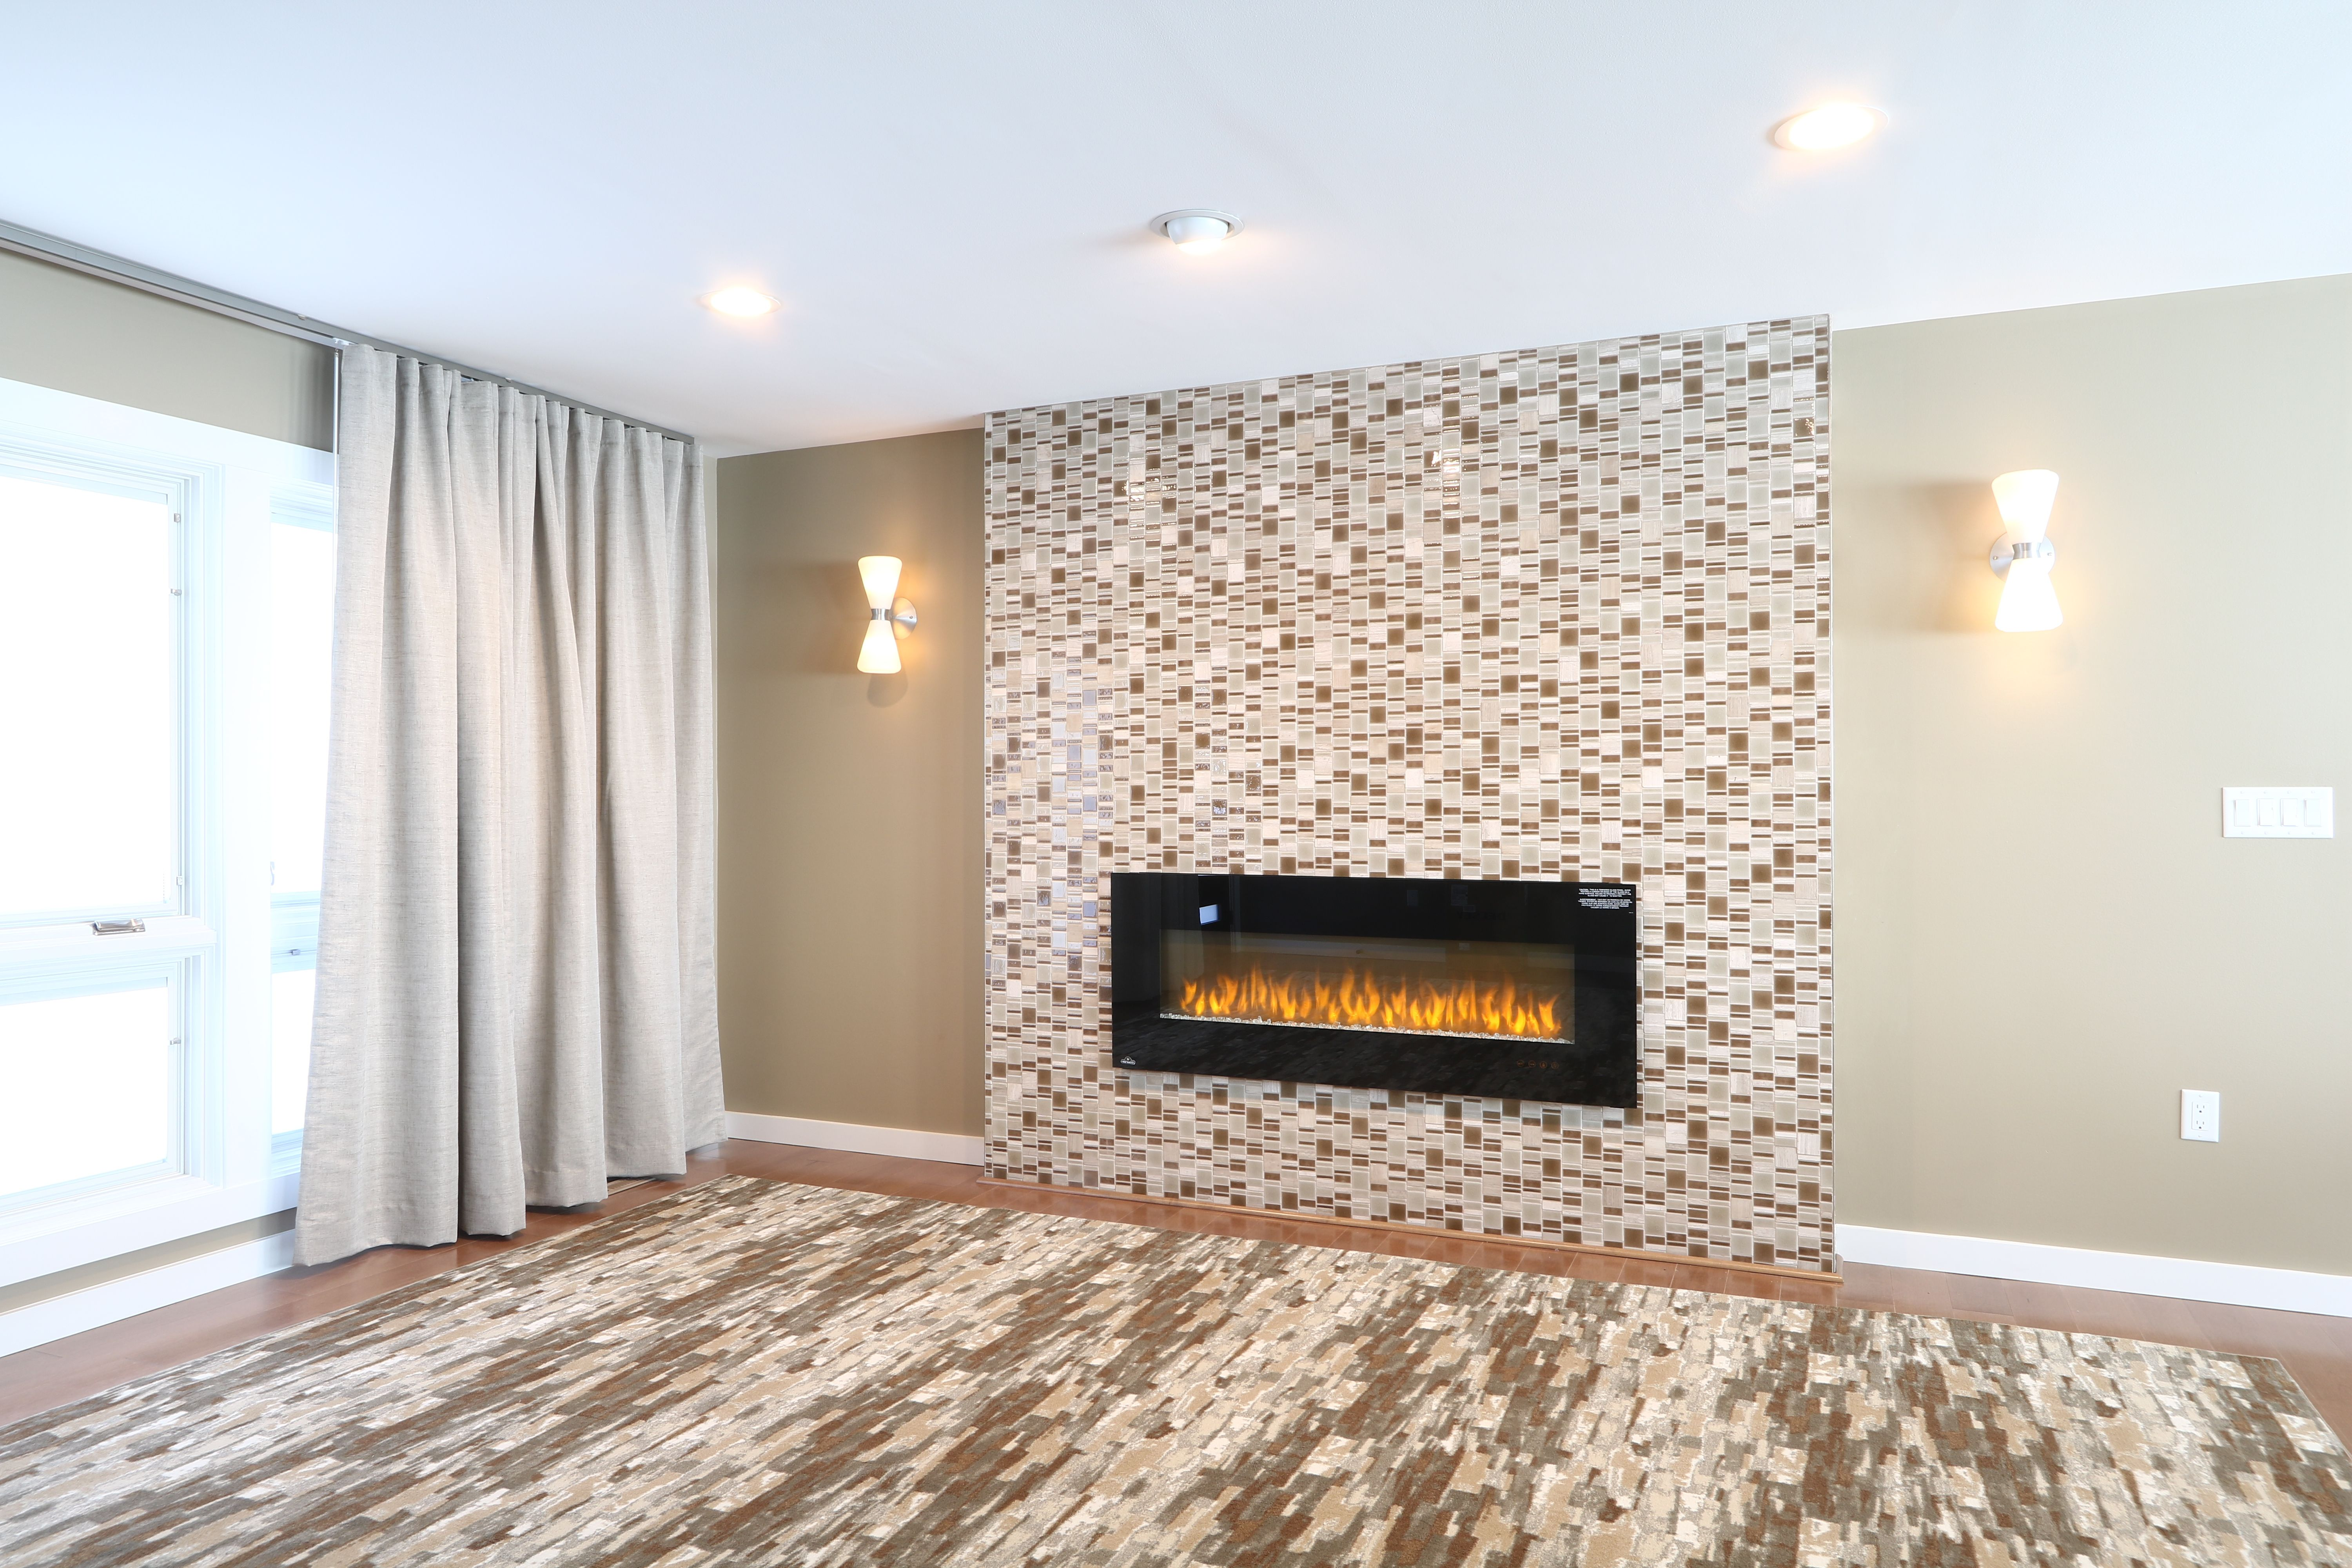 fireplace wall sconces. A Tiled Wall Area With Electric Fireplace  Sconces Custom Drapes Cool Sconces Wall Bed And Fireplace